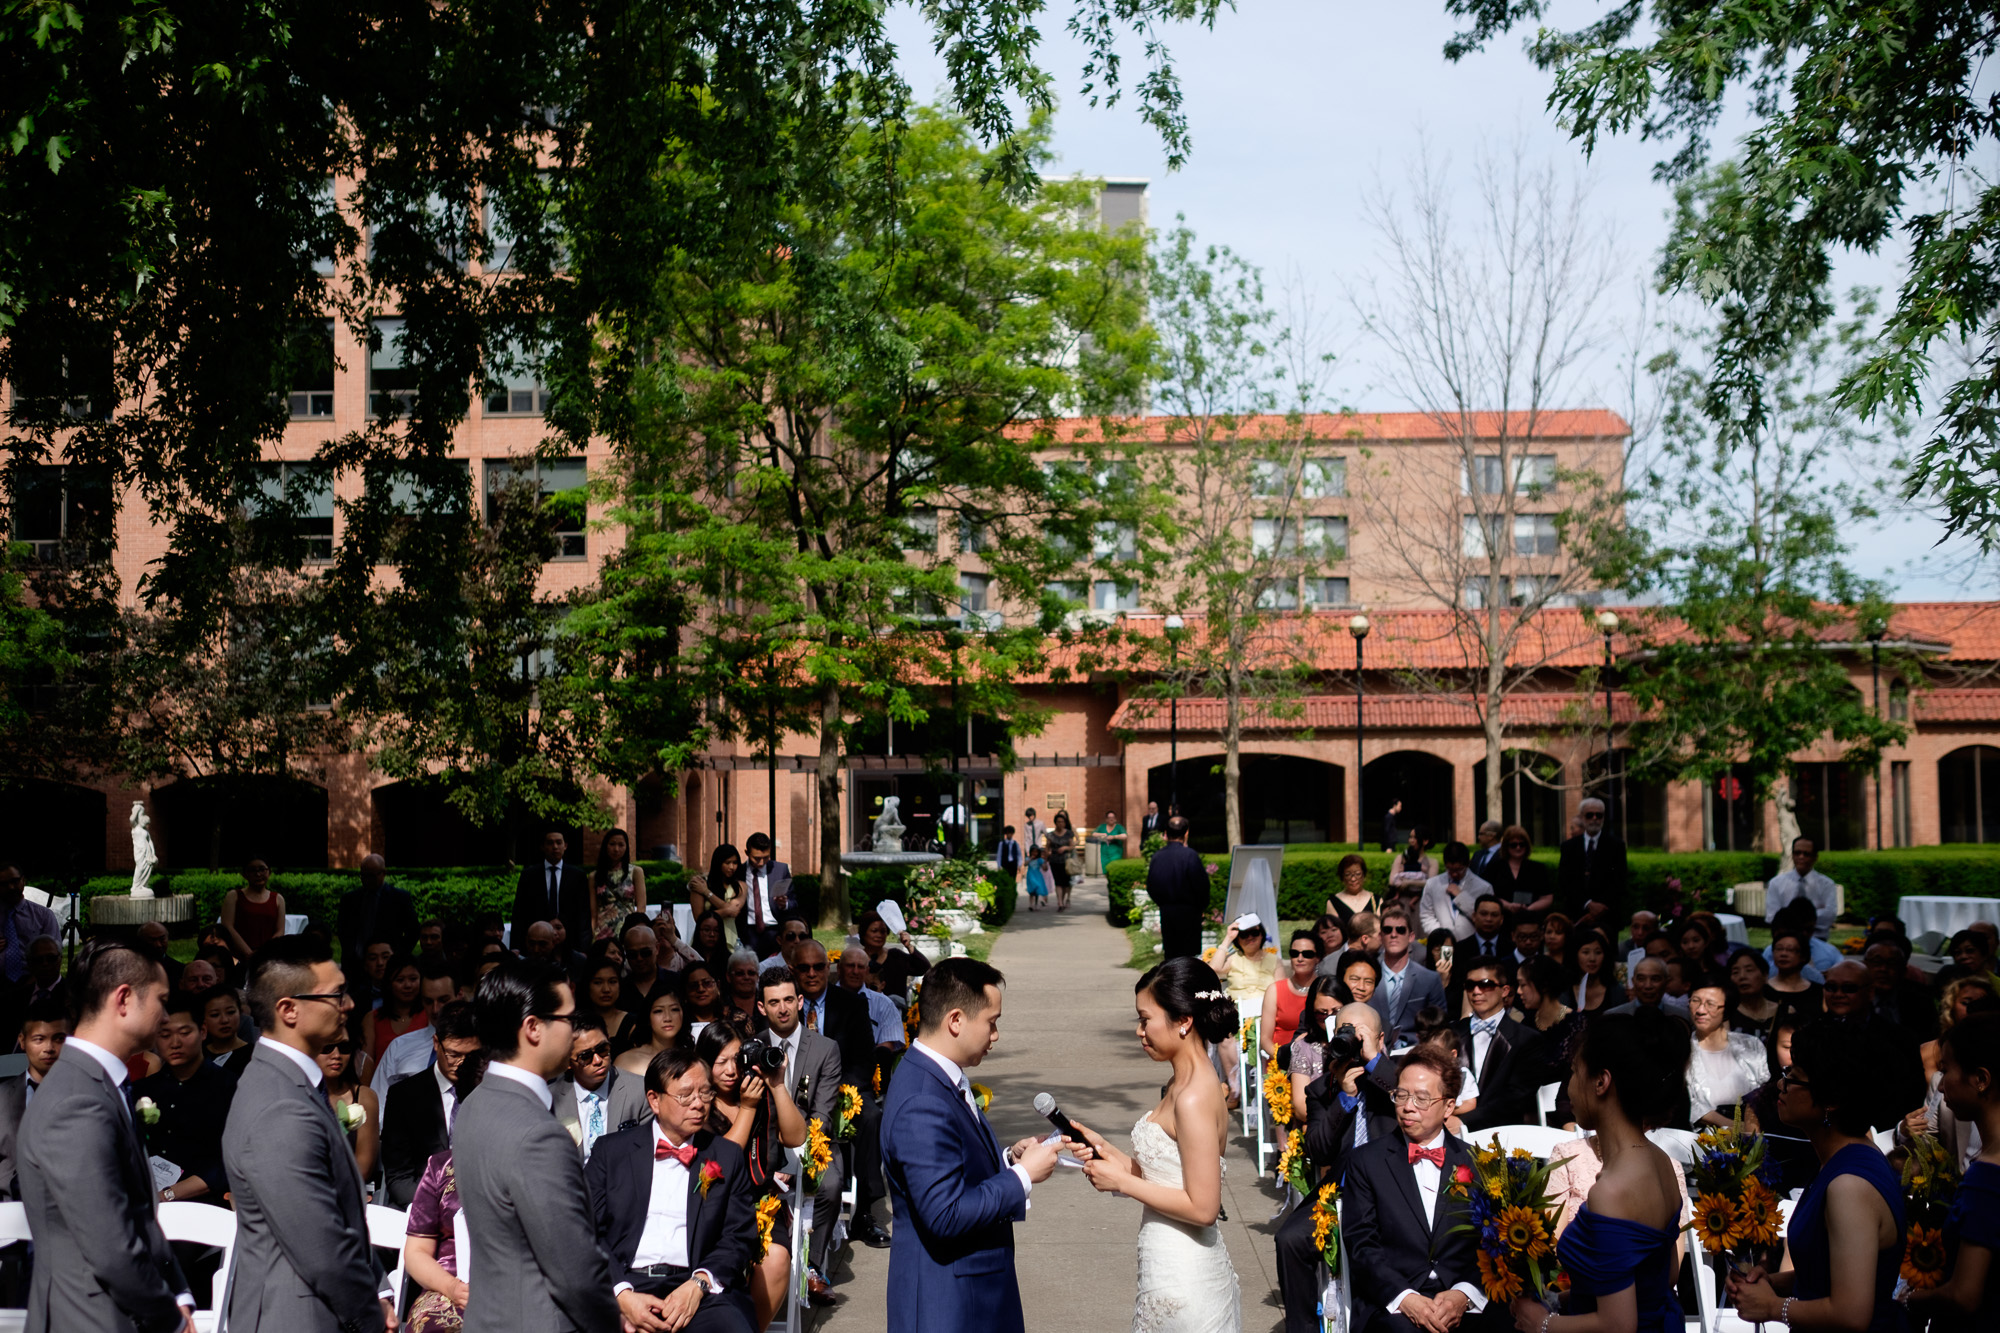 Sherry + jonathan exchange wedding vows during their outdoor wedding ceremony at the Columbus Centre in Toronto.